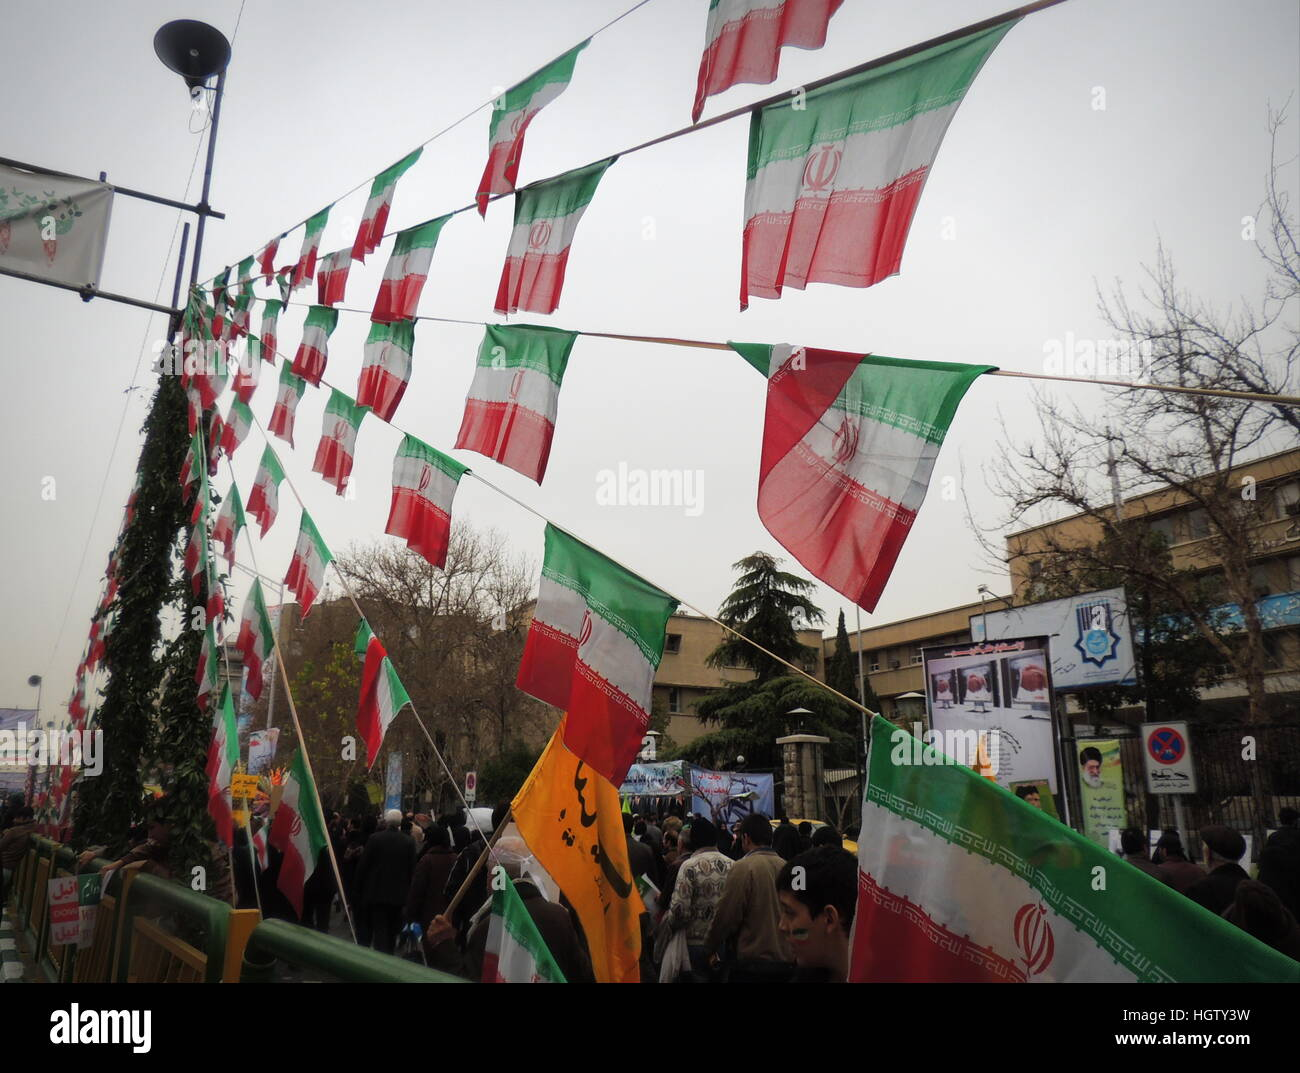 Iranian flags at Islamic Revolution anniversary rally, national day of Iran in Tehran - Stock Image